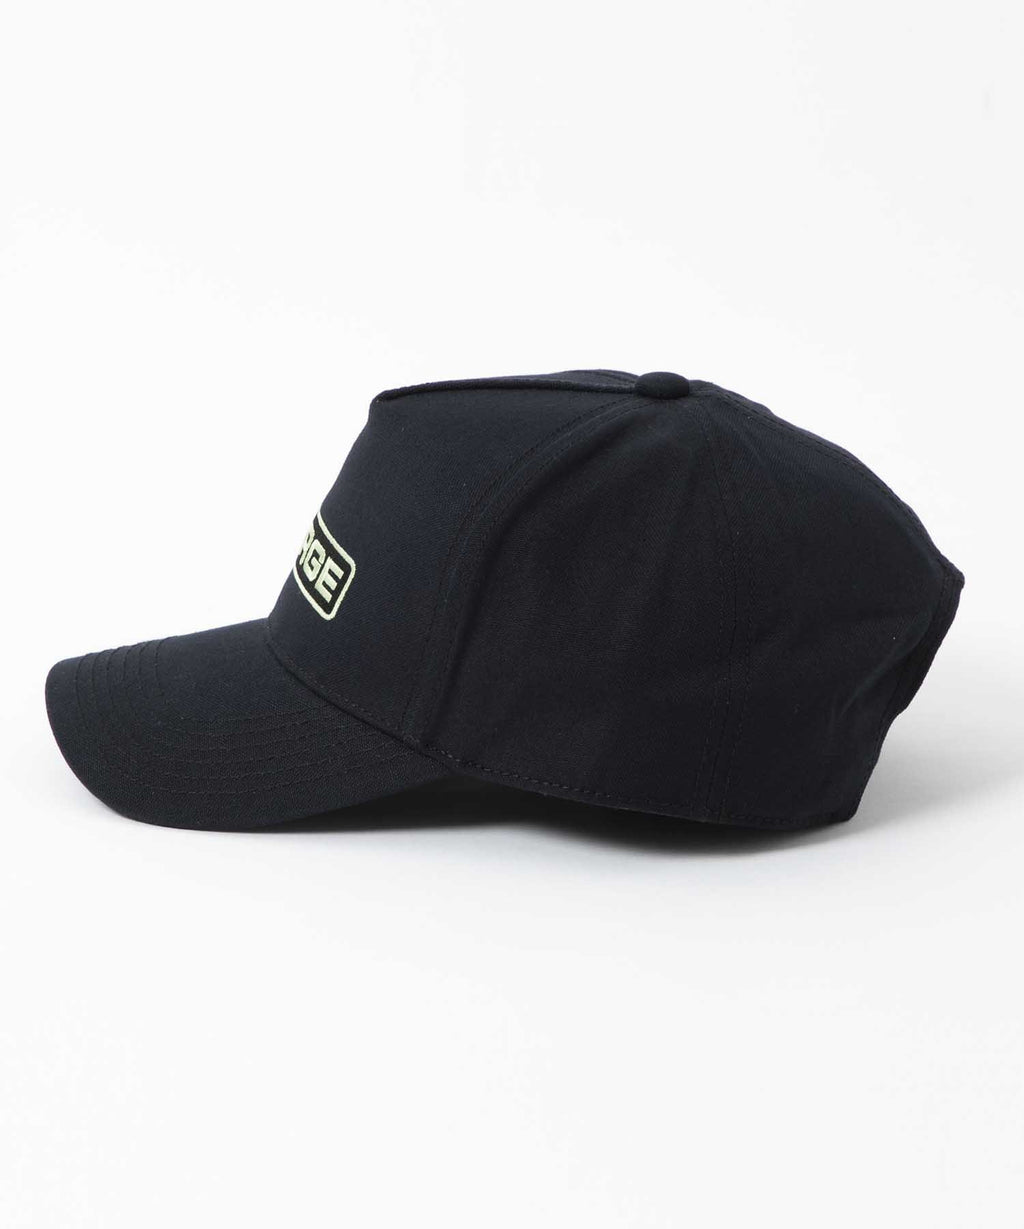 ROUNDED LOGO TRUCKER CAP - BLACK